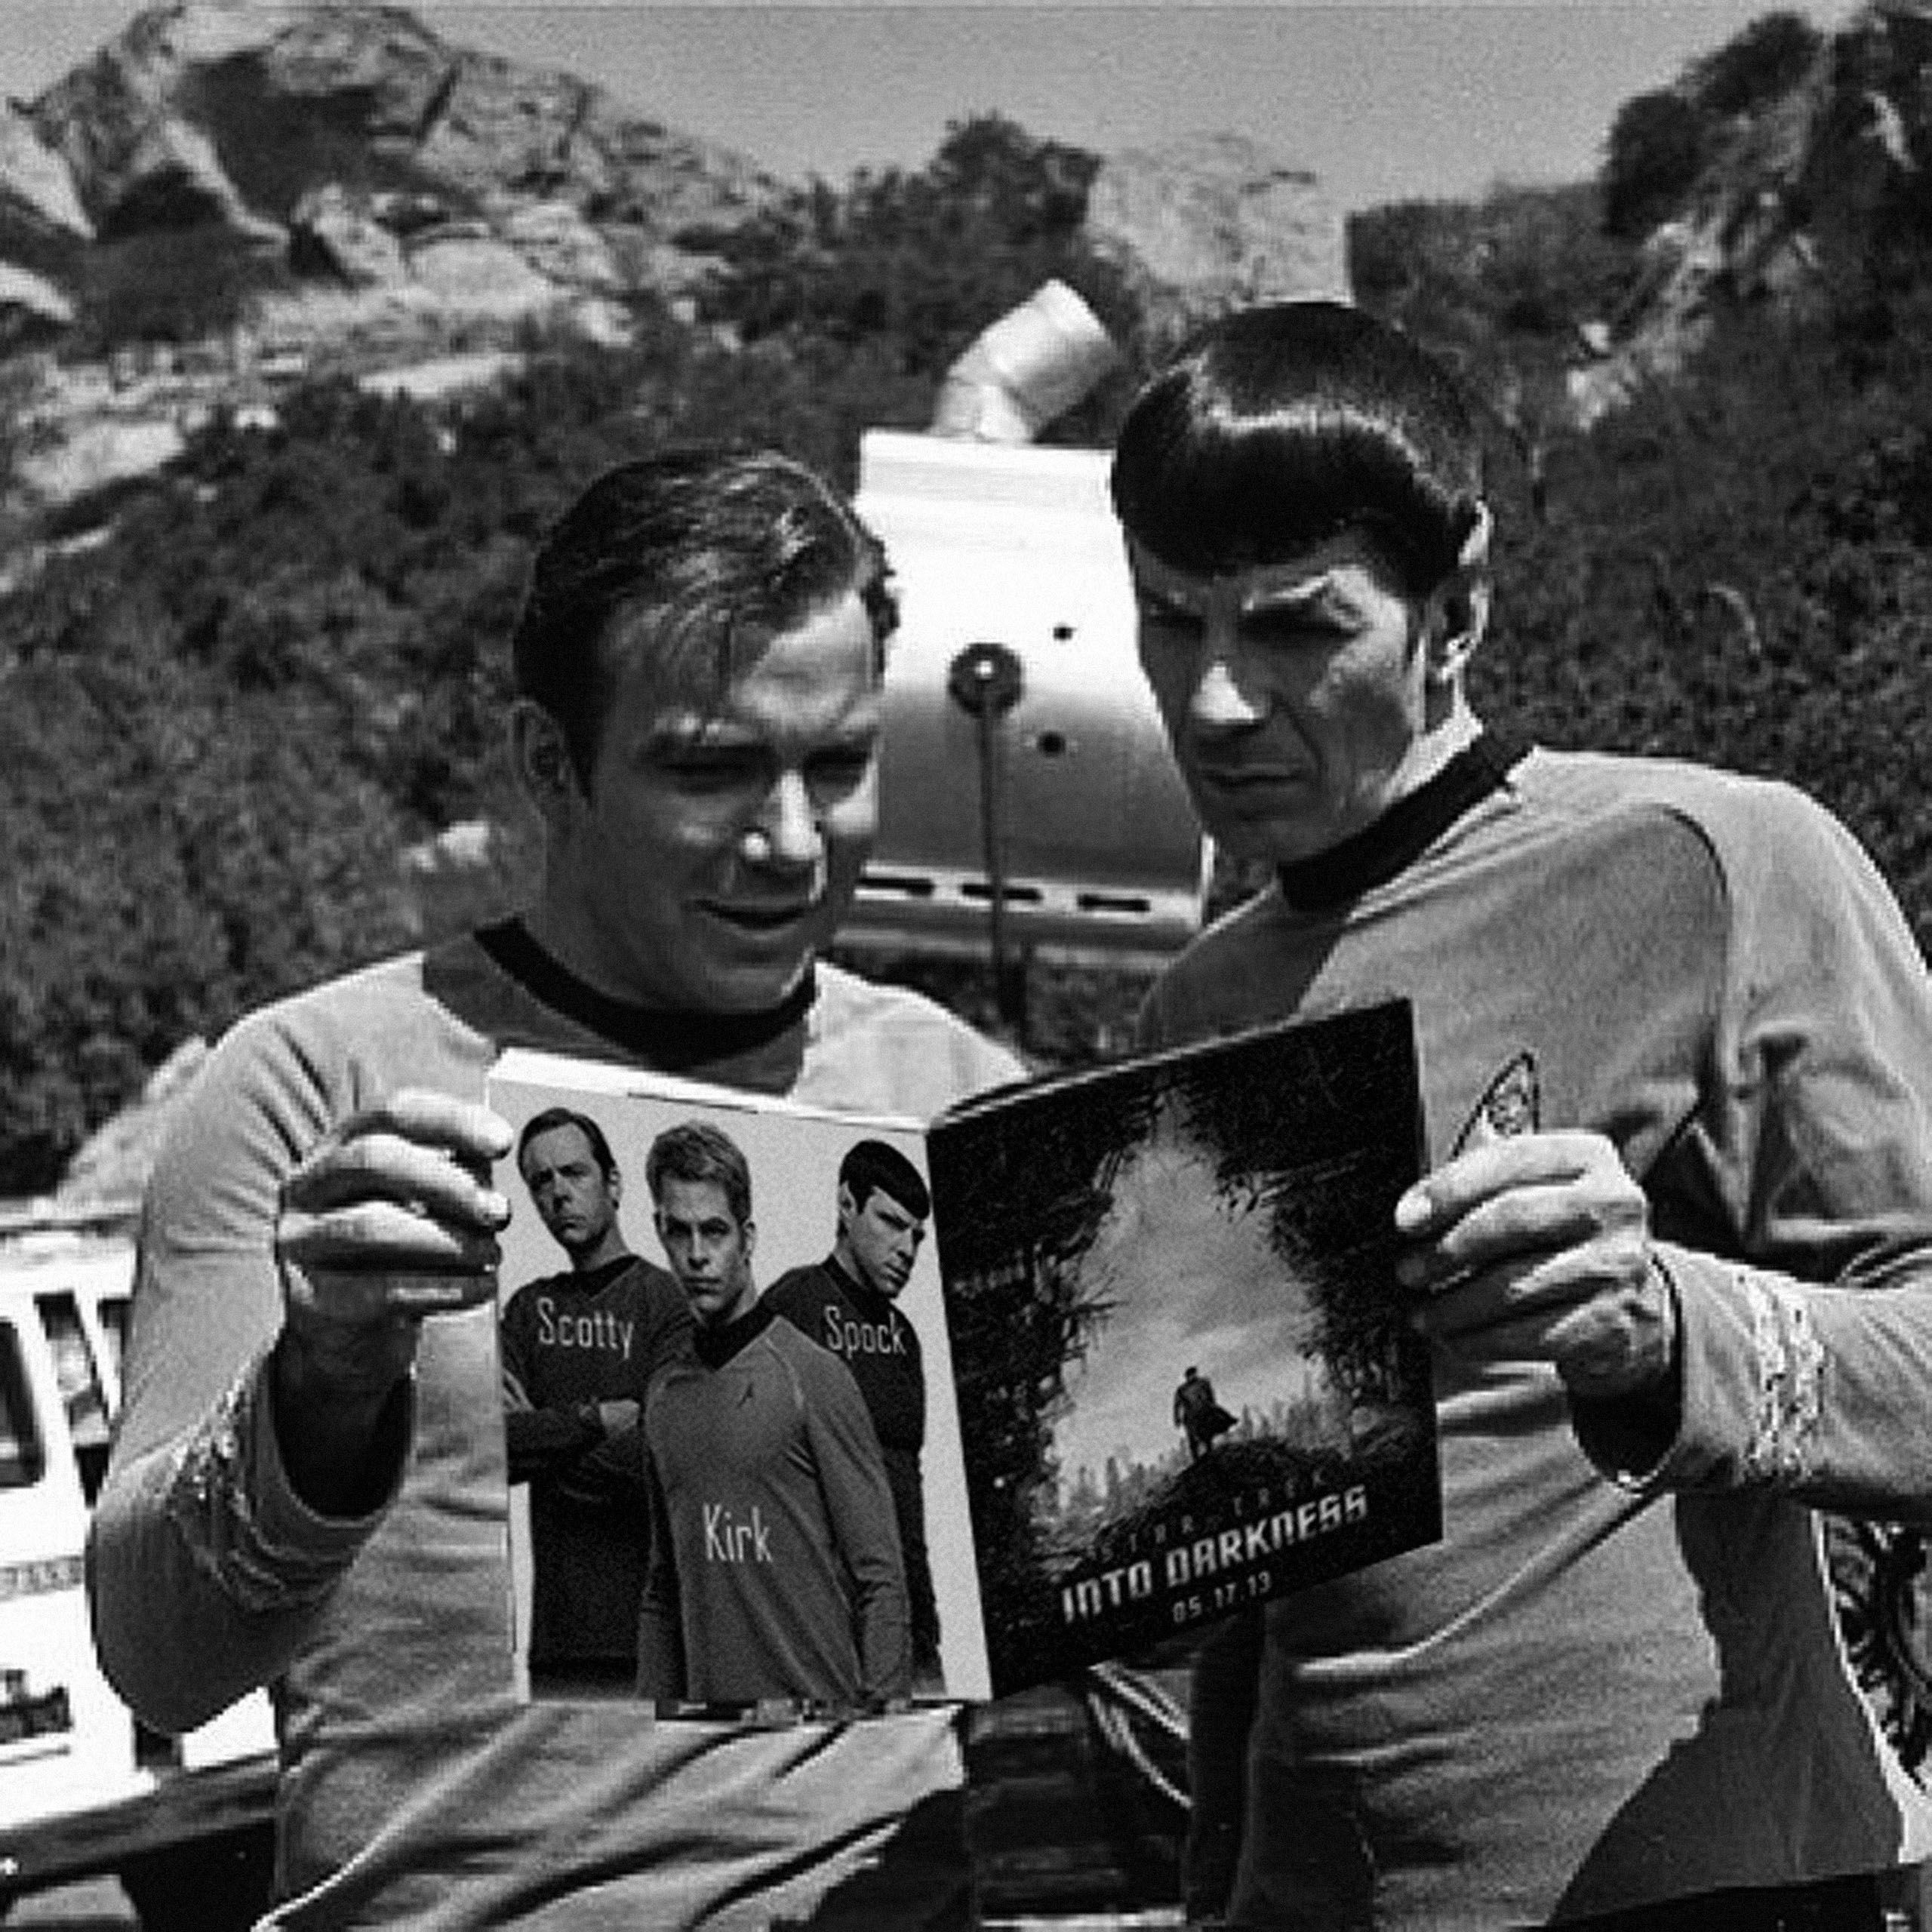 Pin by Je.C on Star Trek (With images) Star trek funny